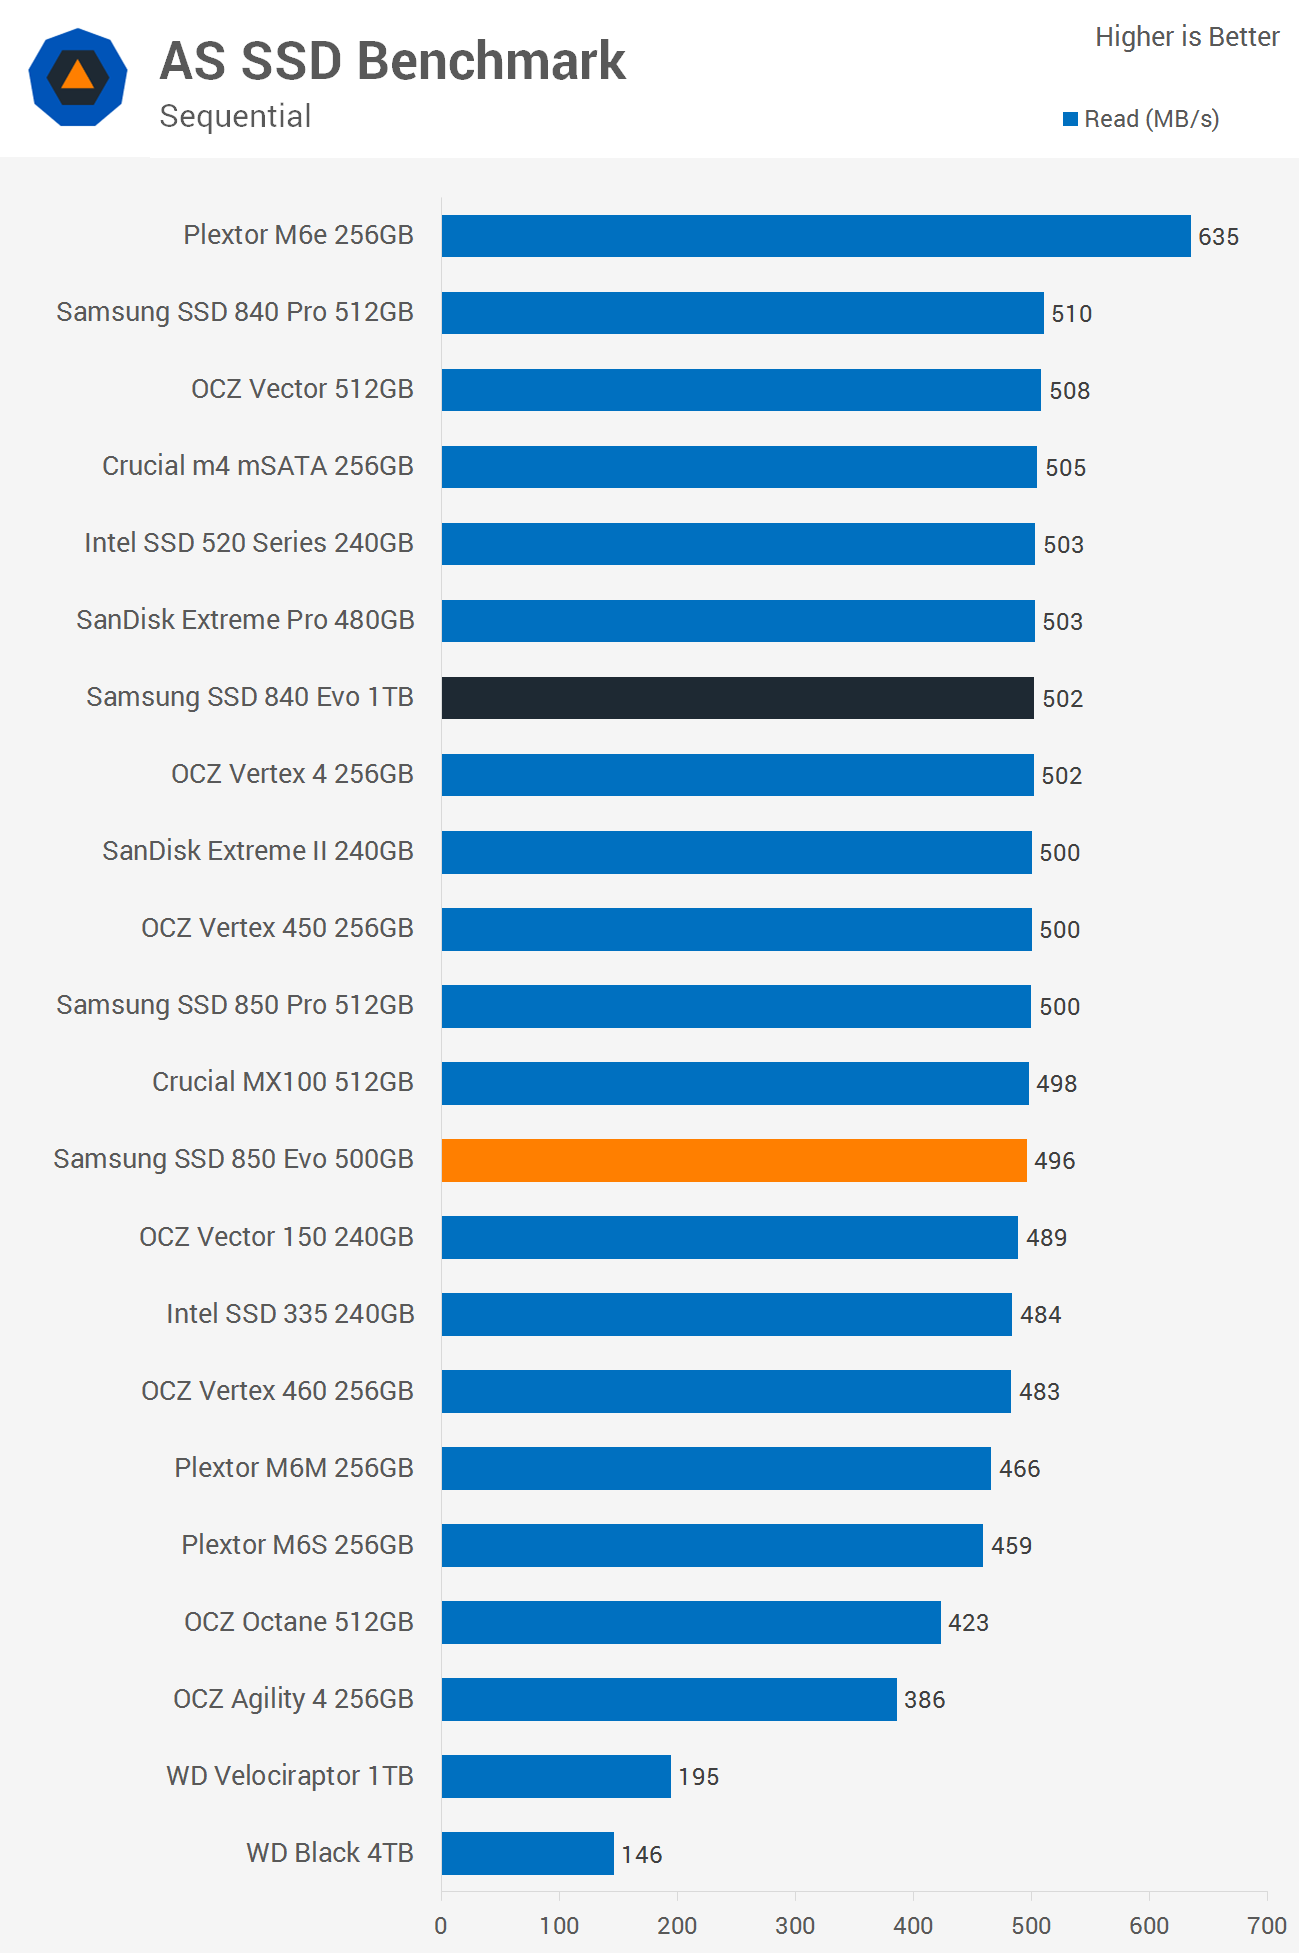 Samsung SSD 850 Evo 500GB Review > Benchmarks: AS SSD